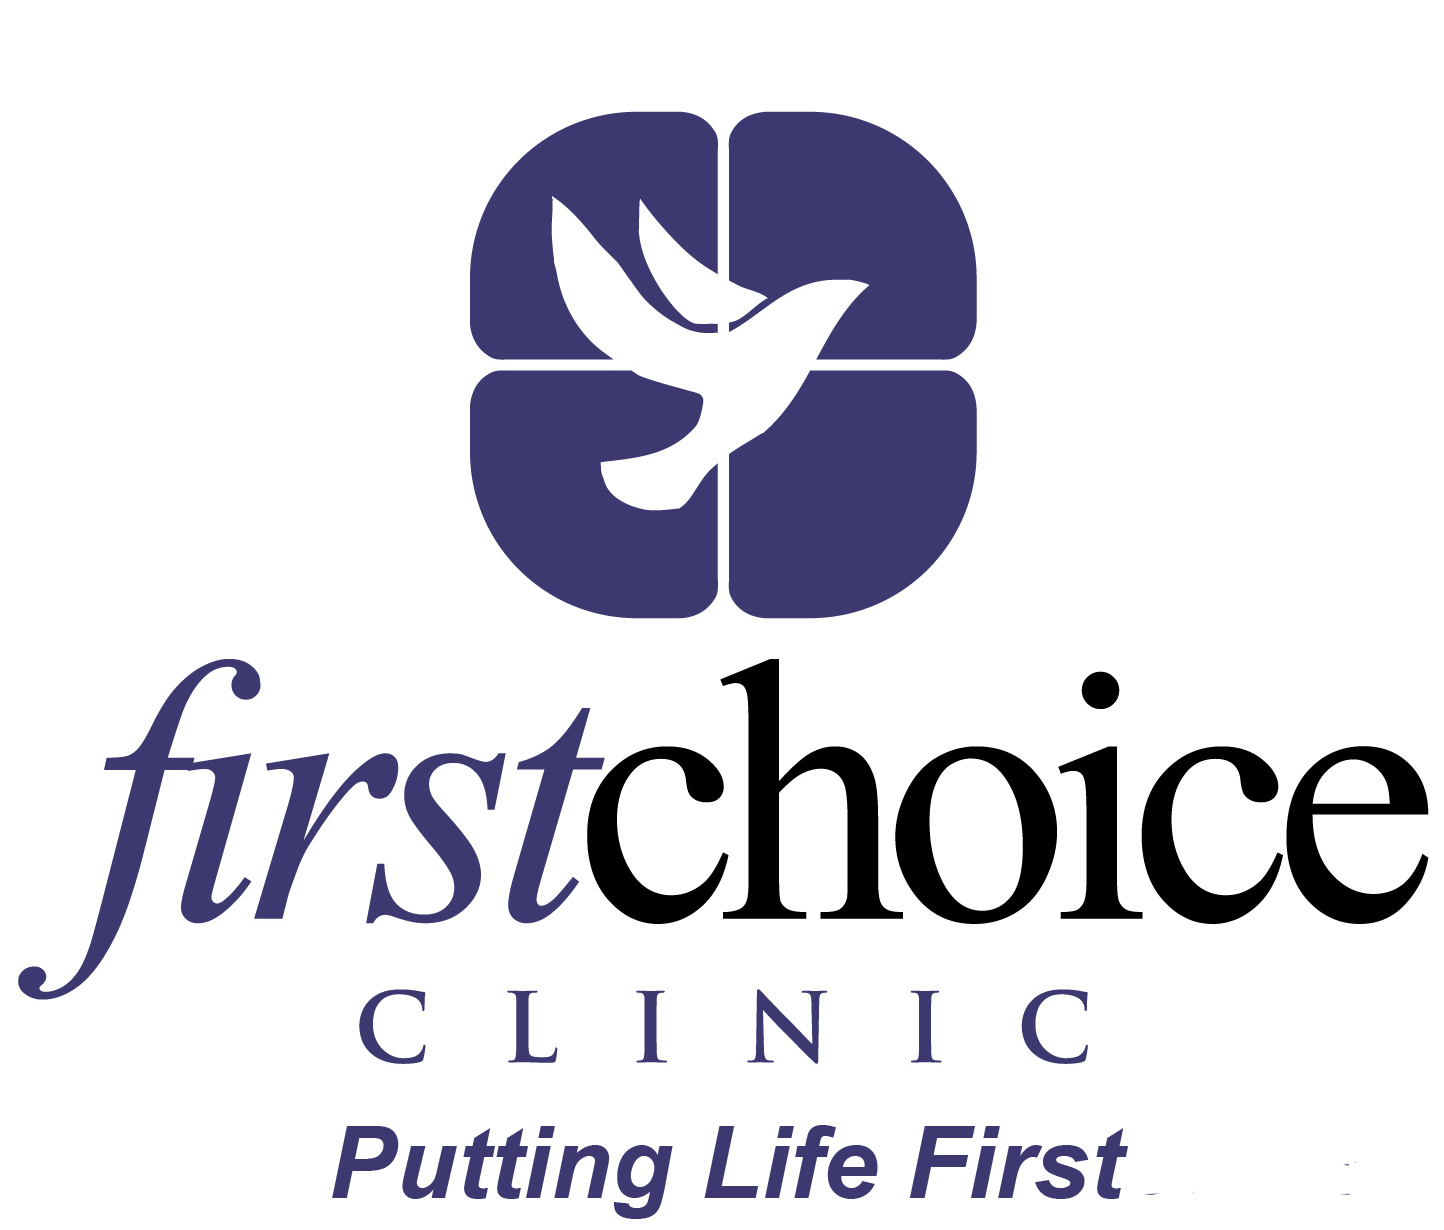 FirstChoice Clinic